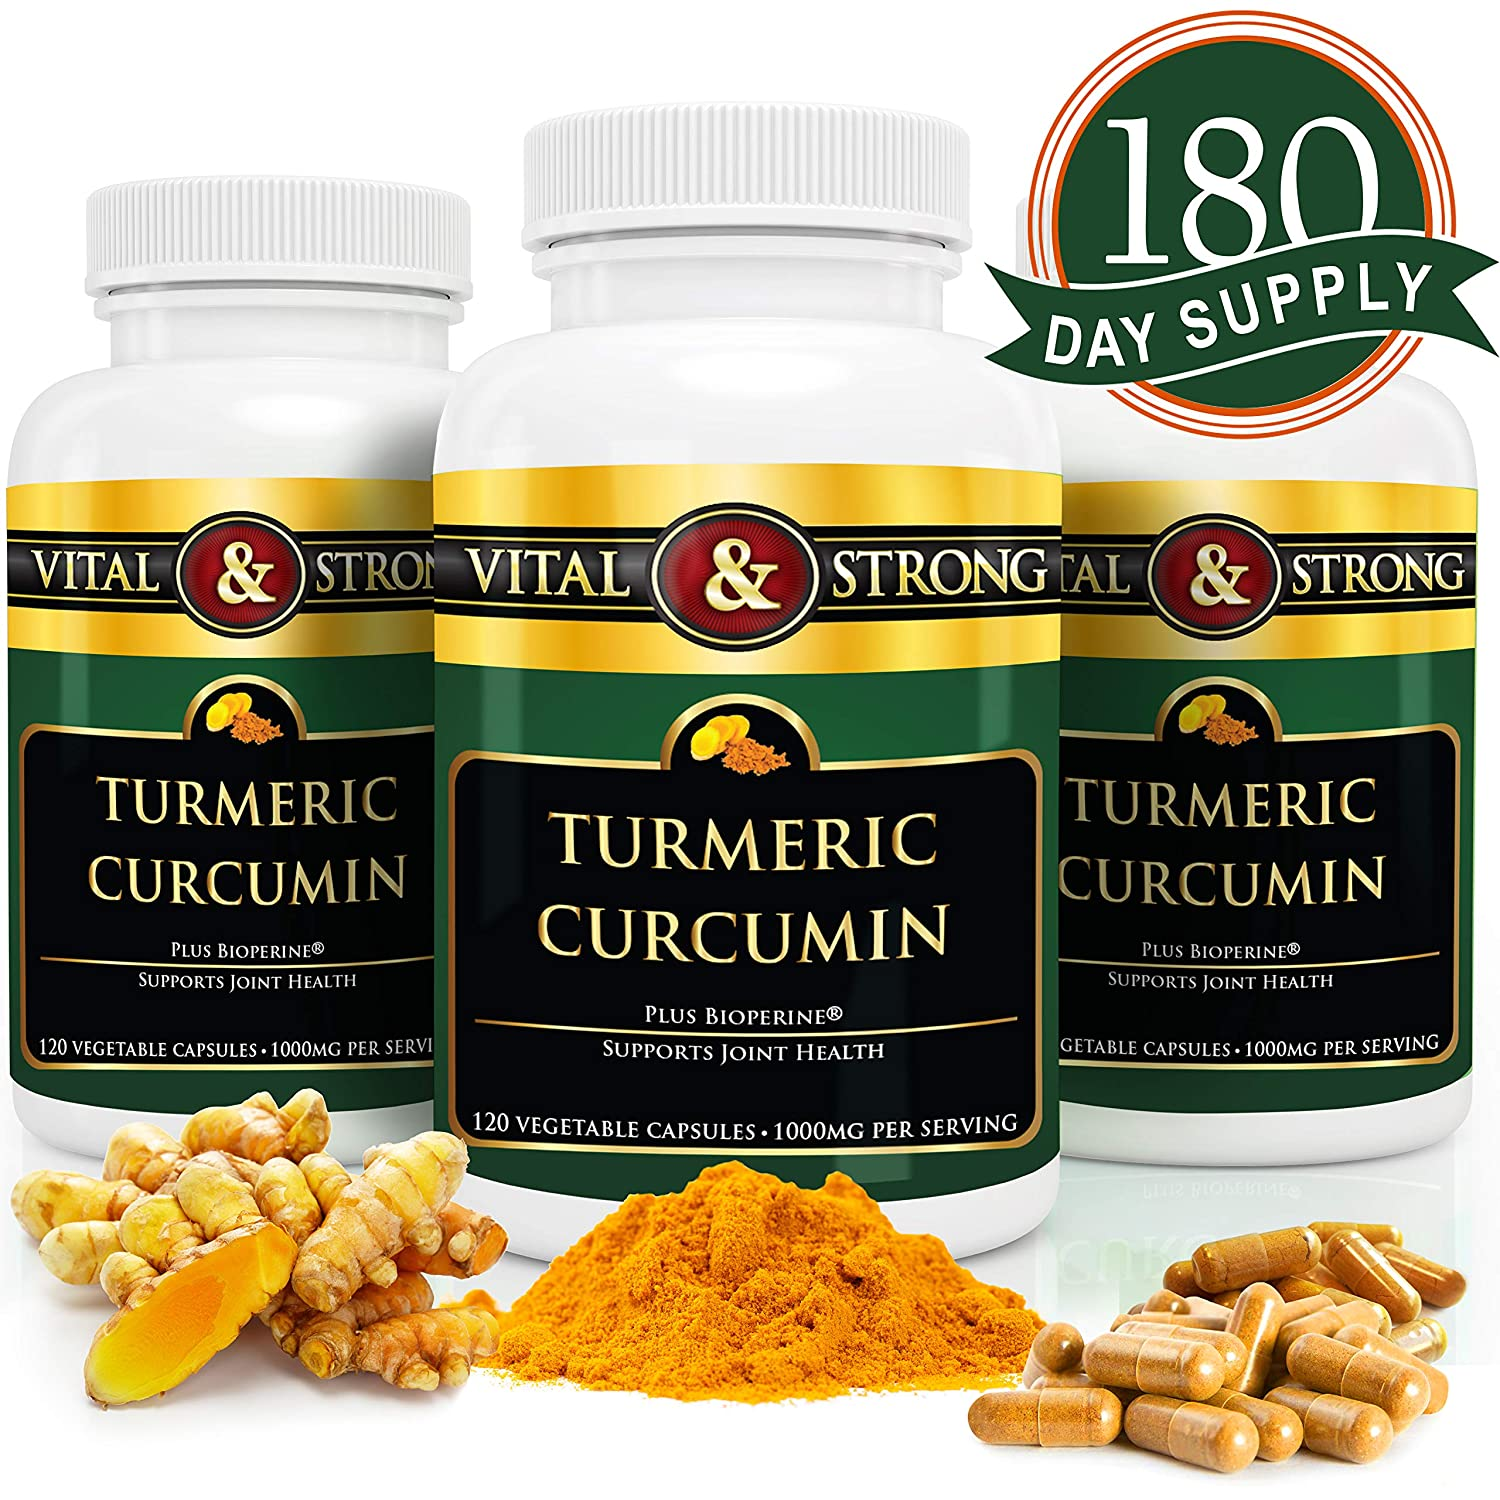 Organic Curcumin Phytosome. Non-GMO, Gluten Free, 60 Tablets. Highest Potency and Fastest Absorption. Joint Support, Anti inflammatory Antioxidant Defense.